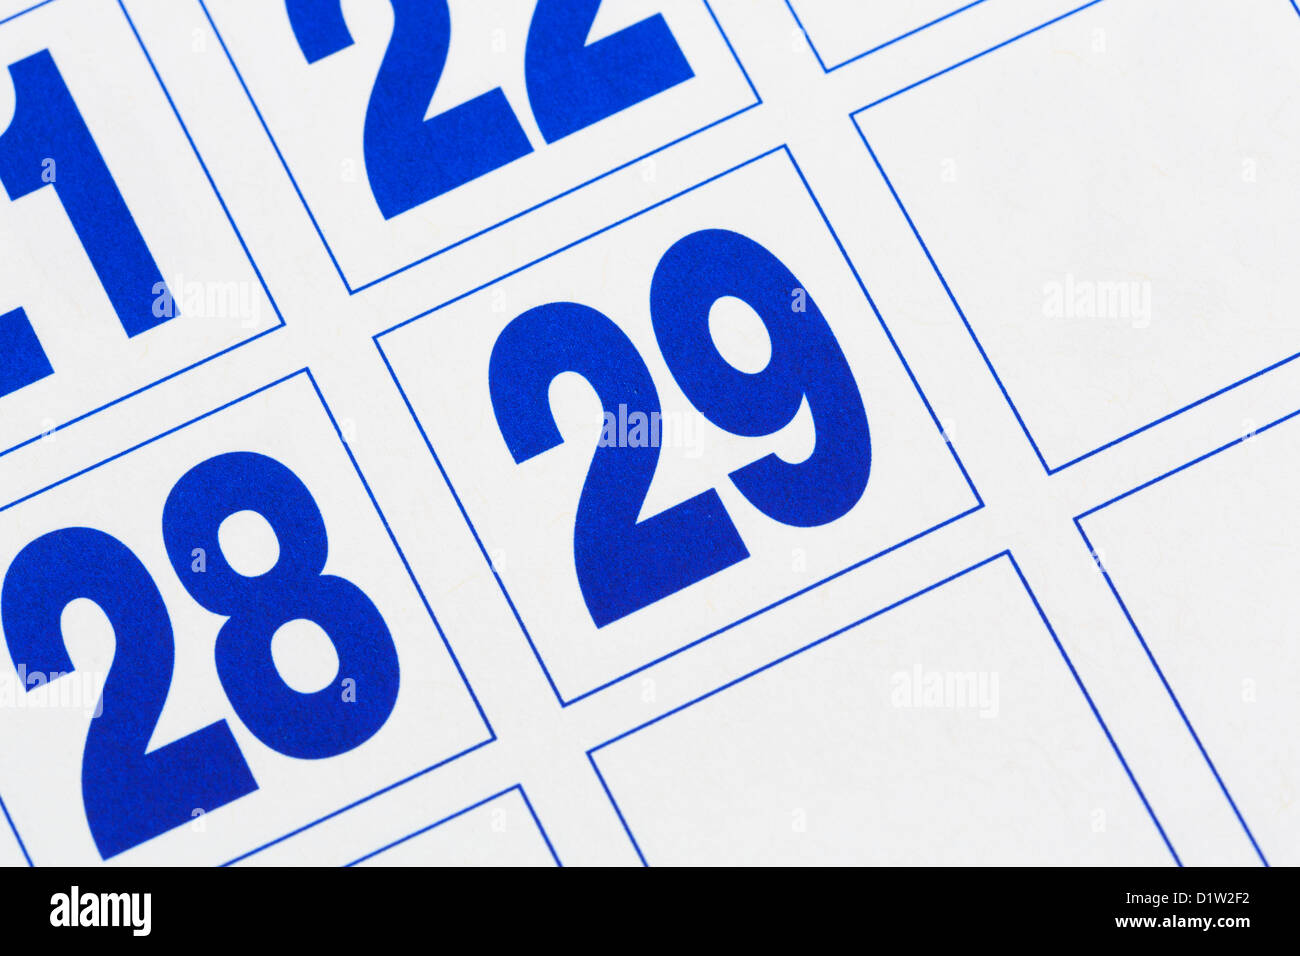 Calendrier Annee Bissextile.Bissextile Photos Bissextile Images Alamy